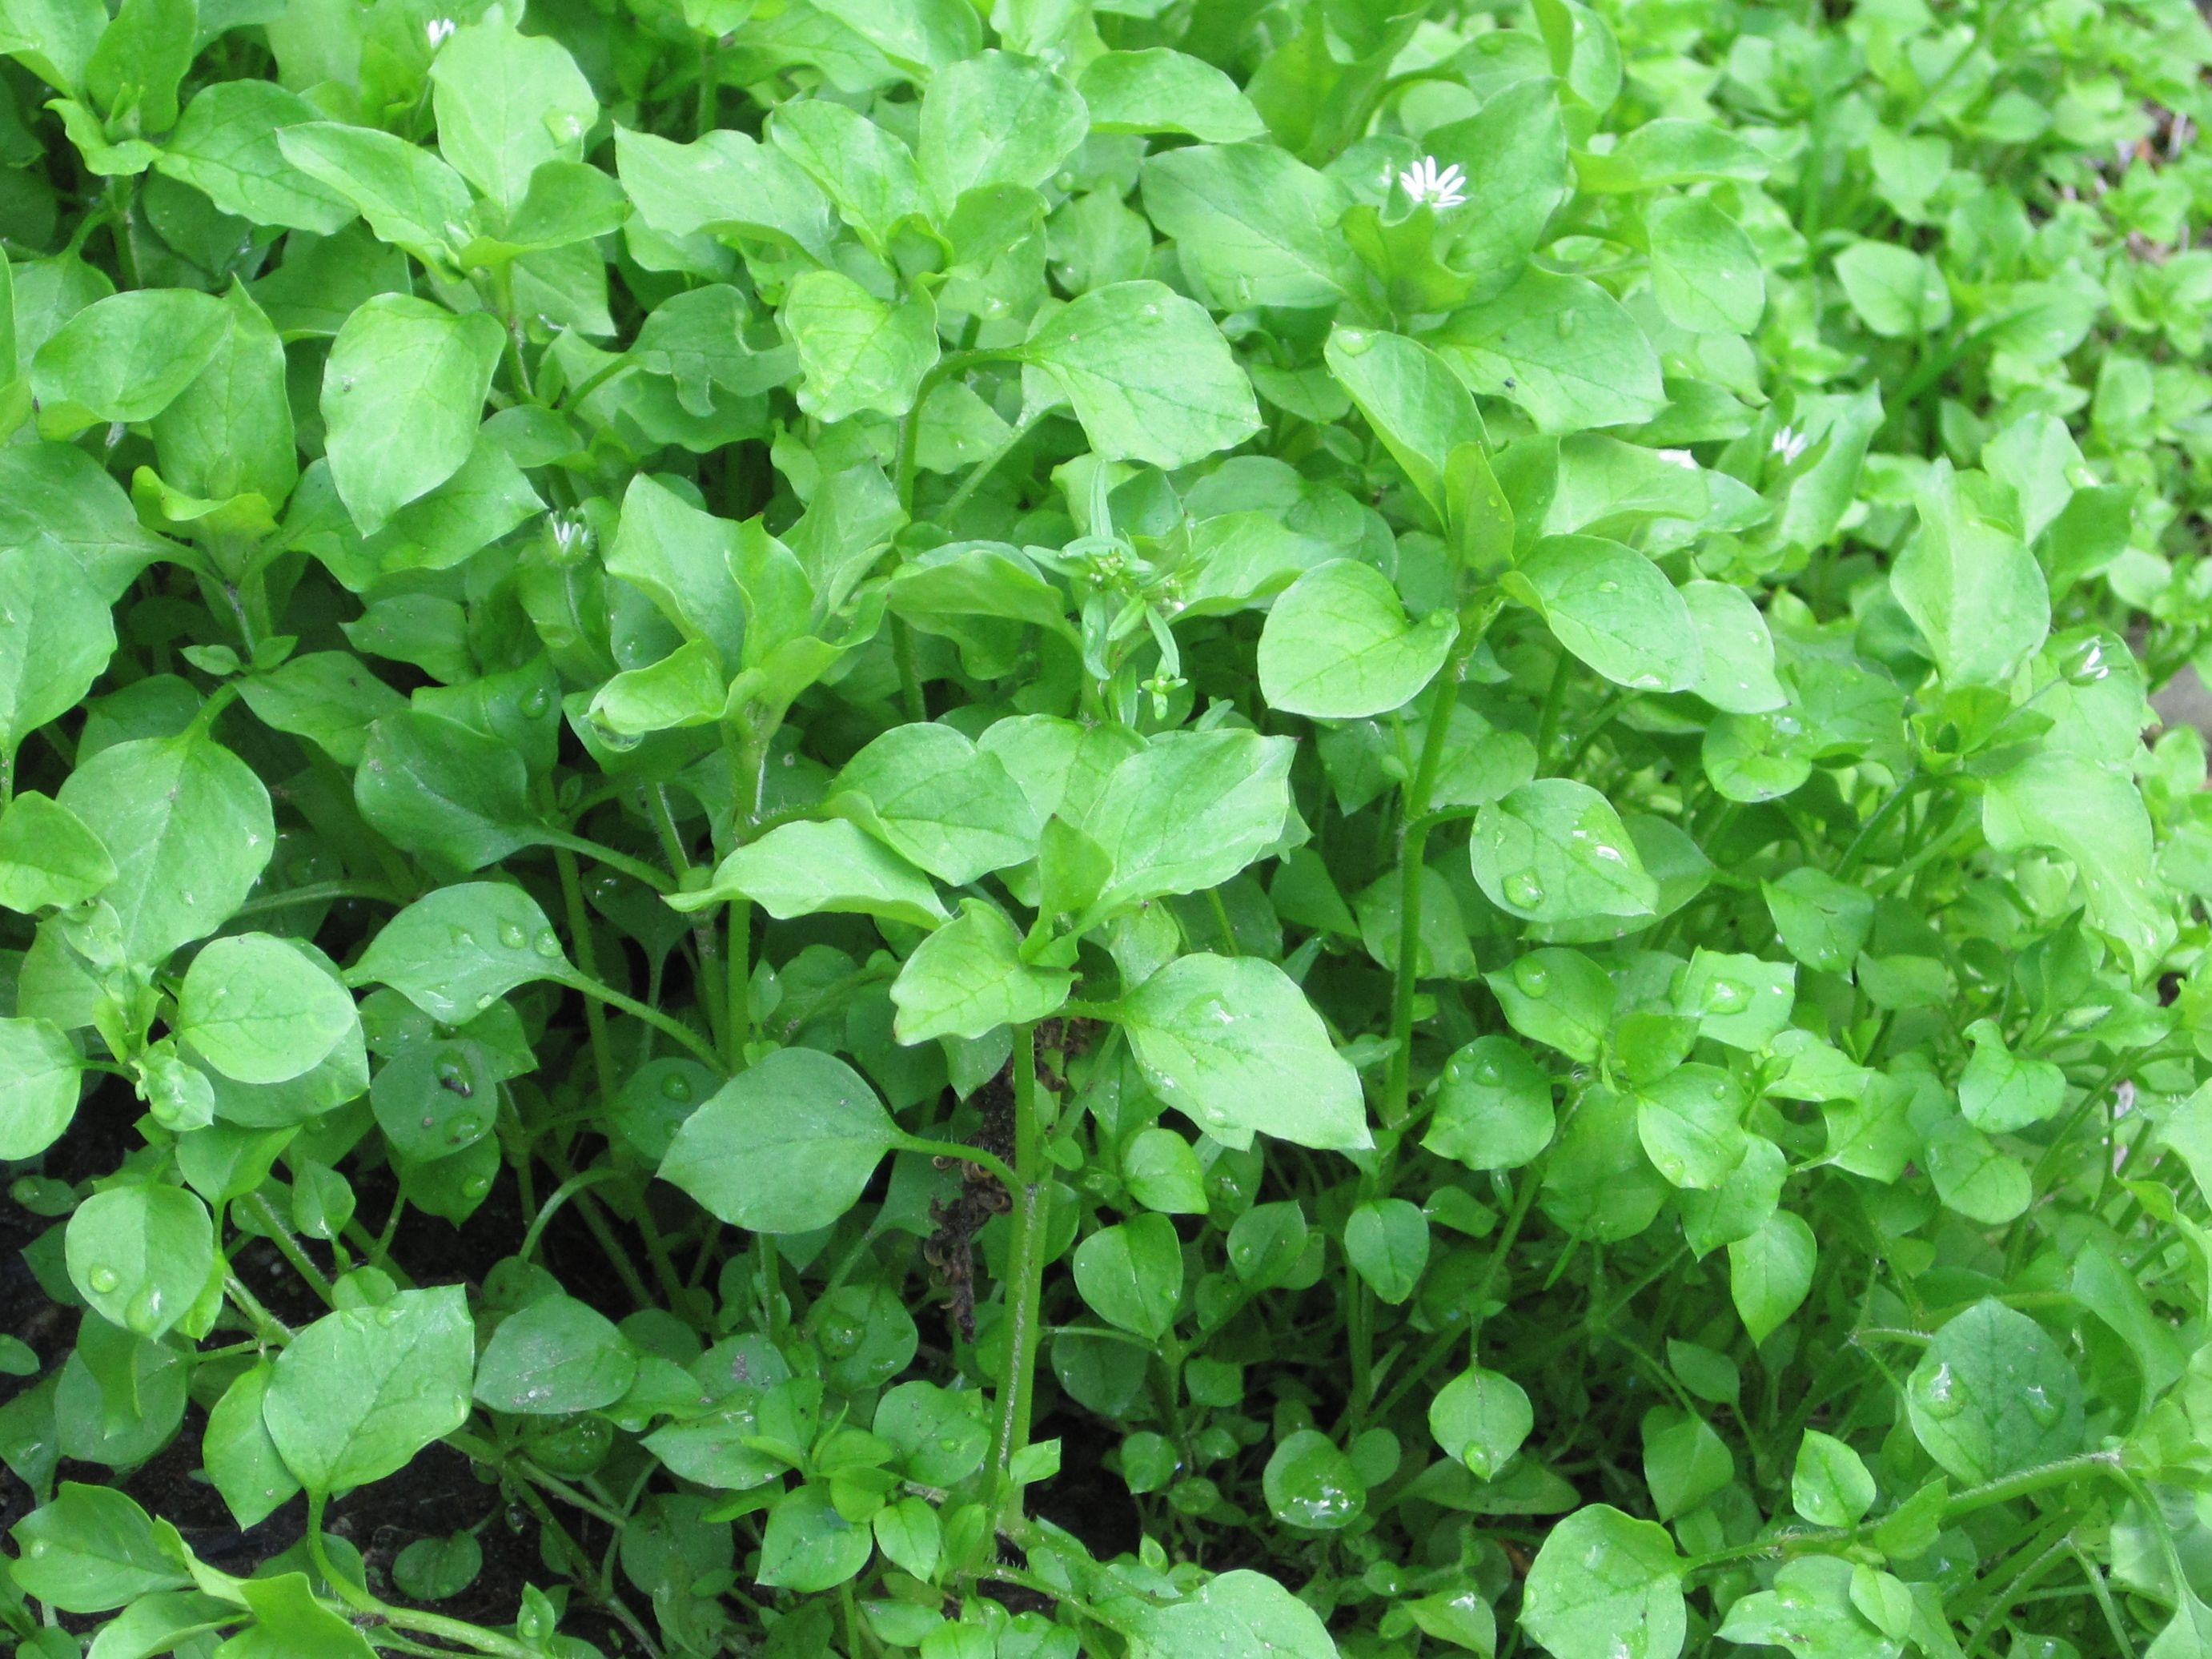 pics How to Eat Chickweed